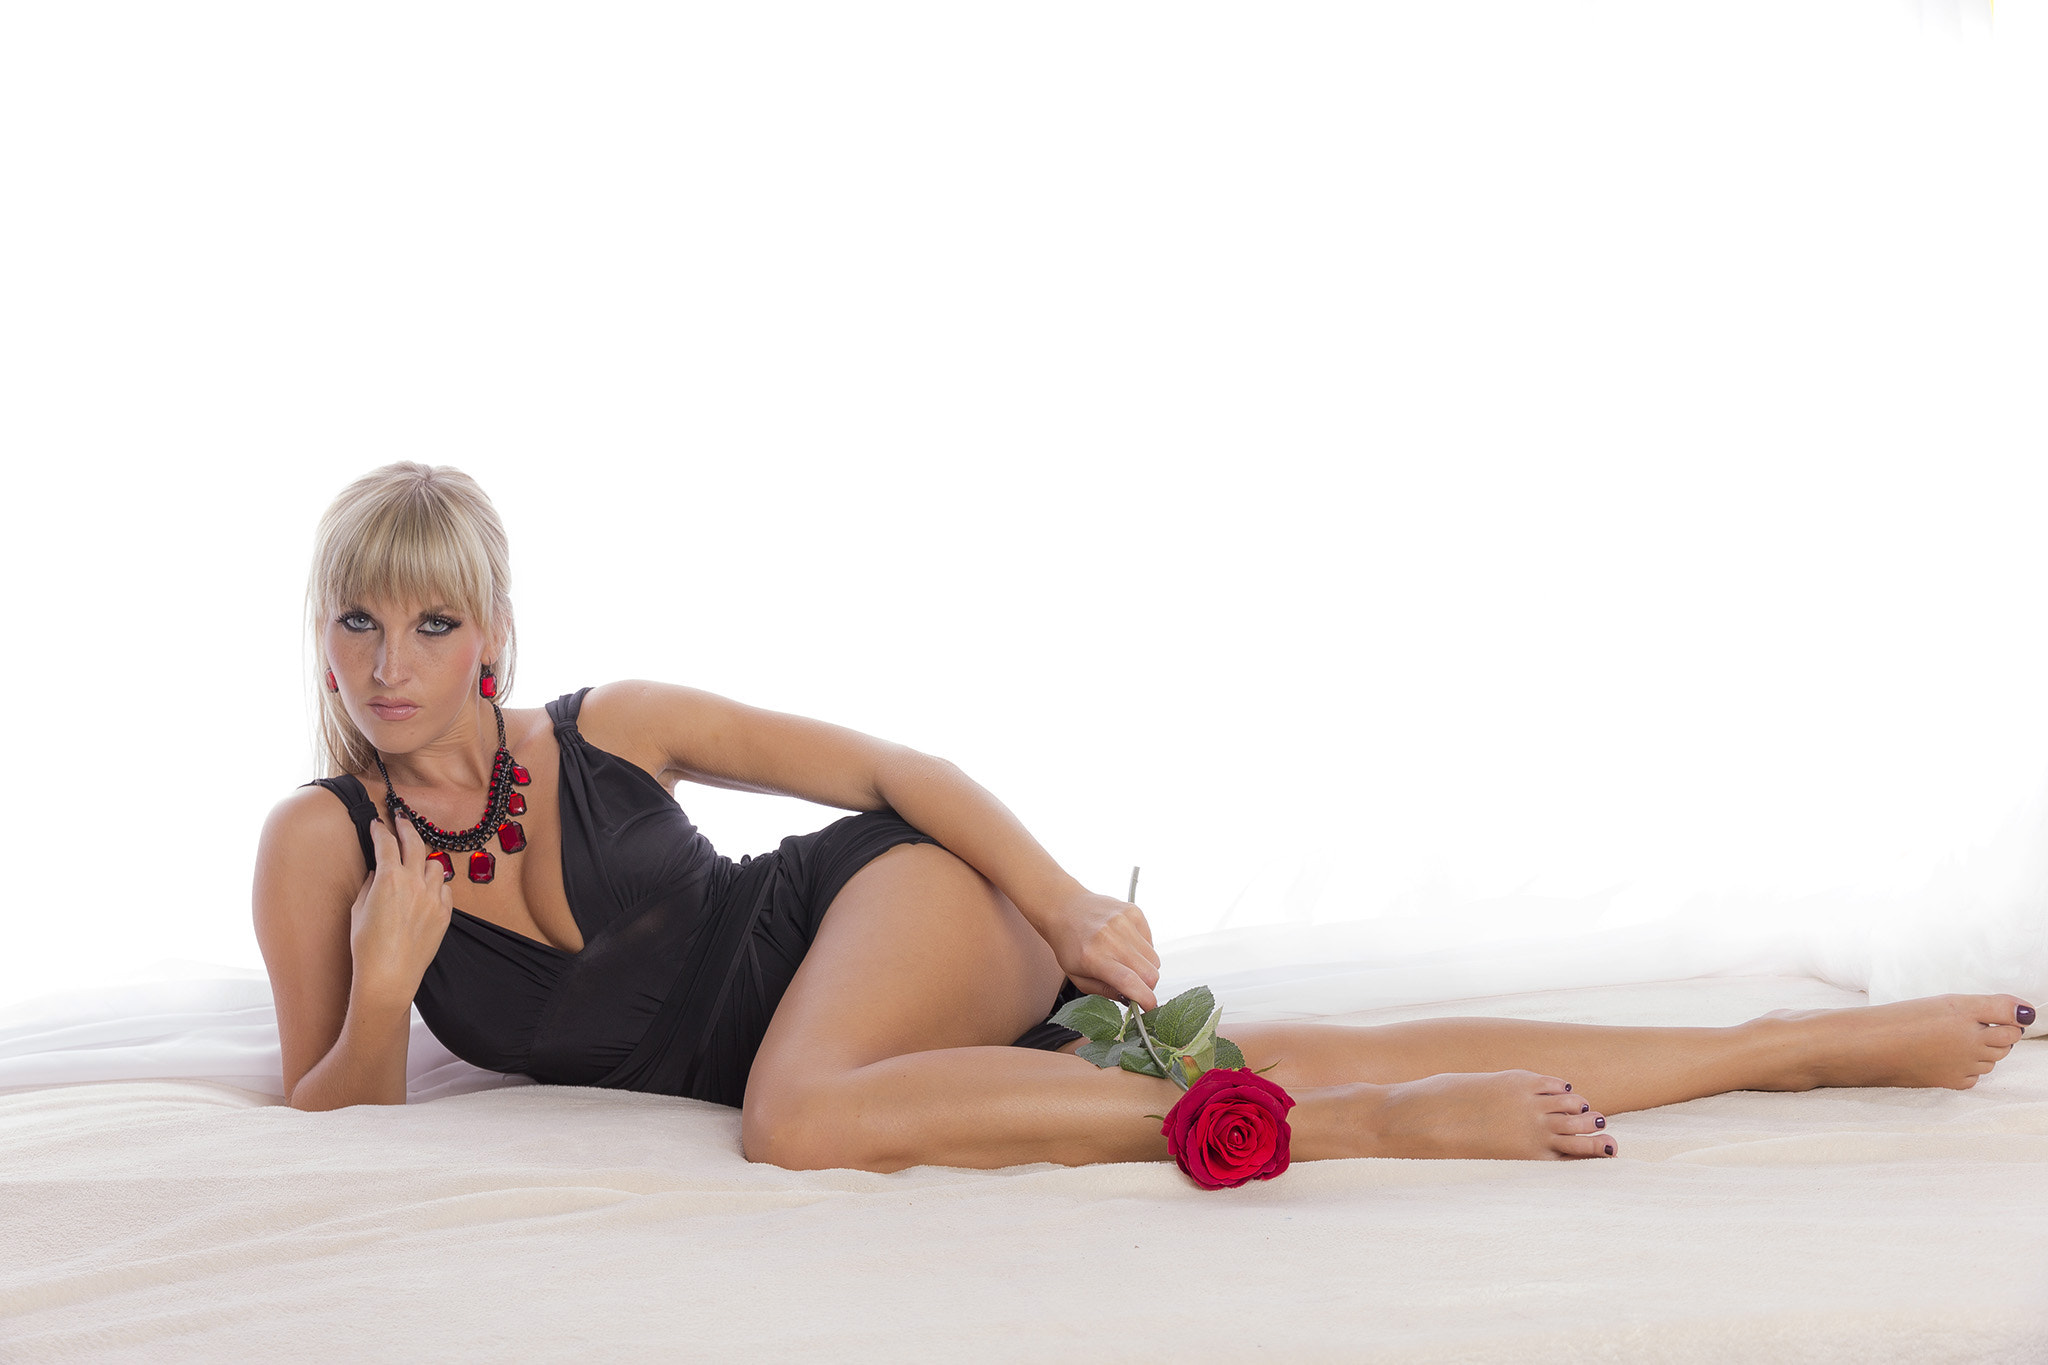 Photograph Red Rose by Guenter Stoehr on 500px